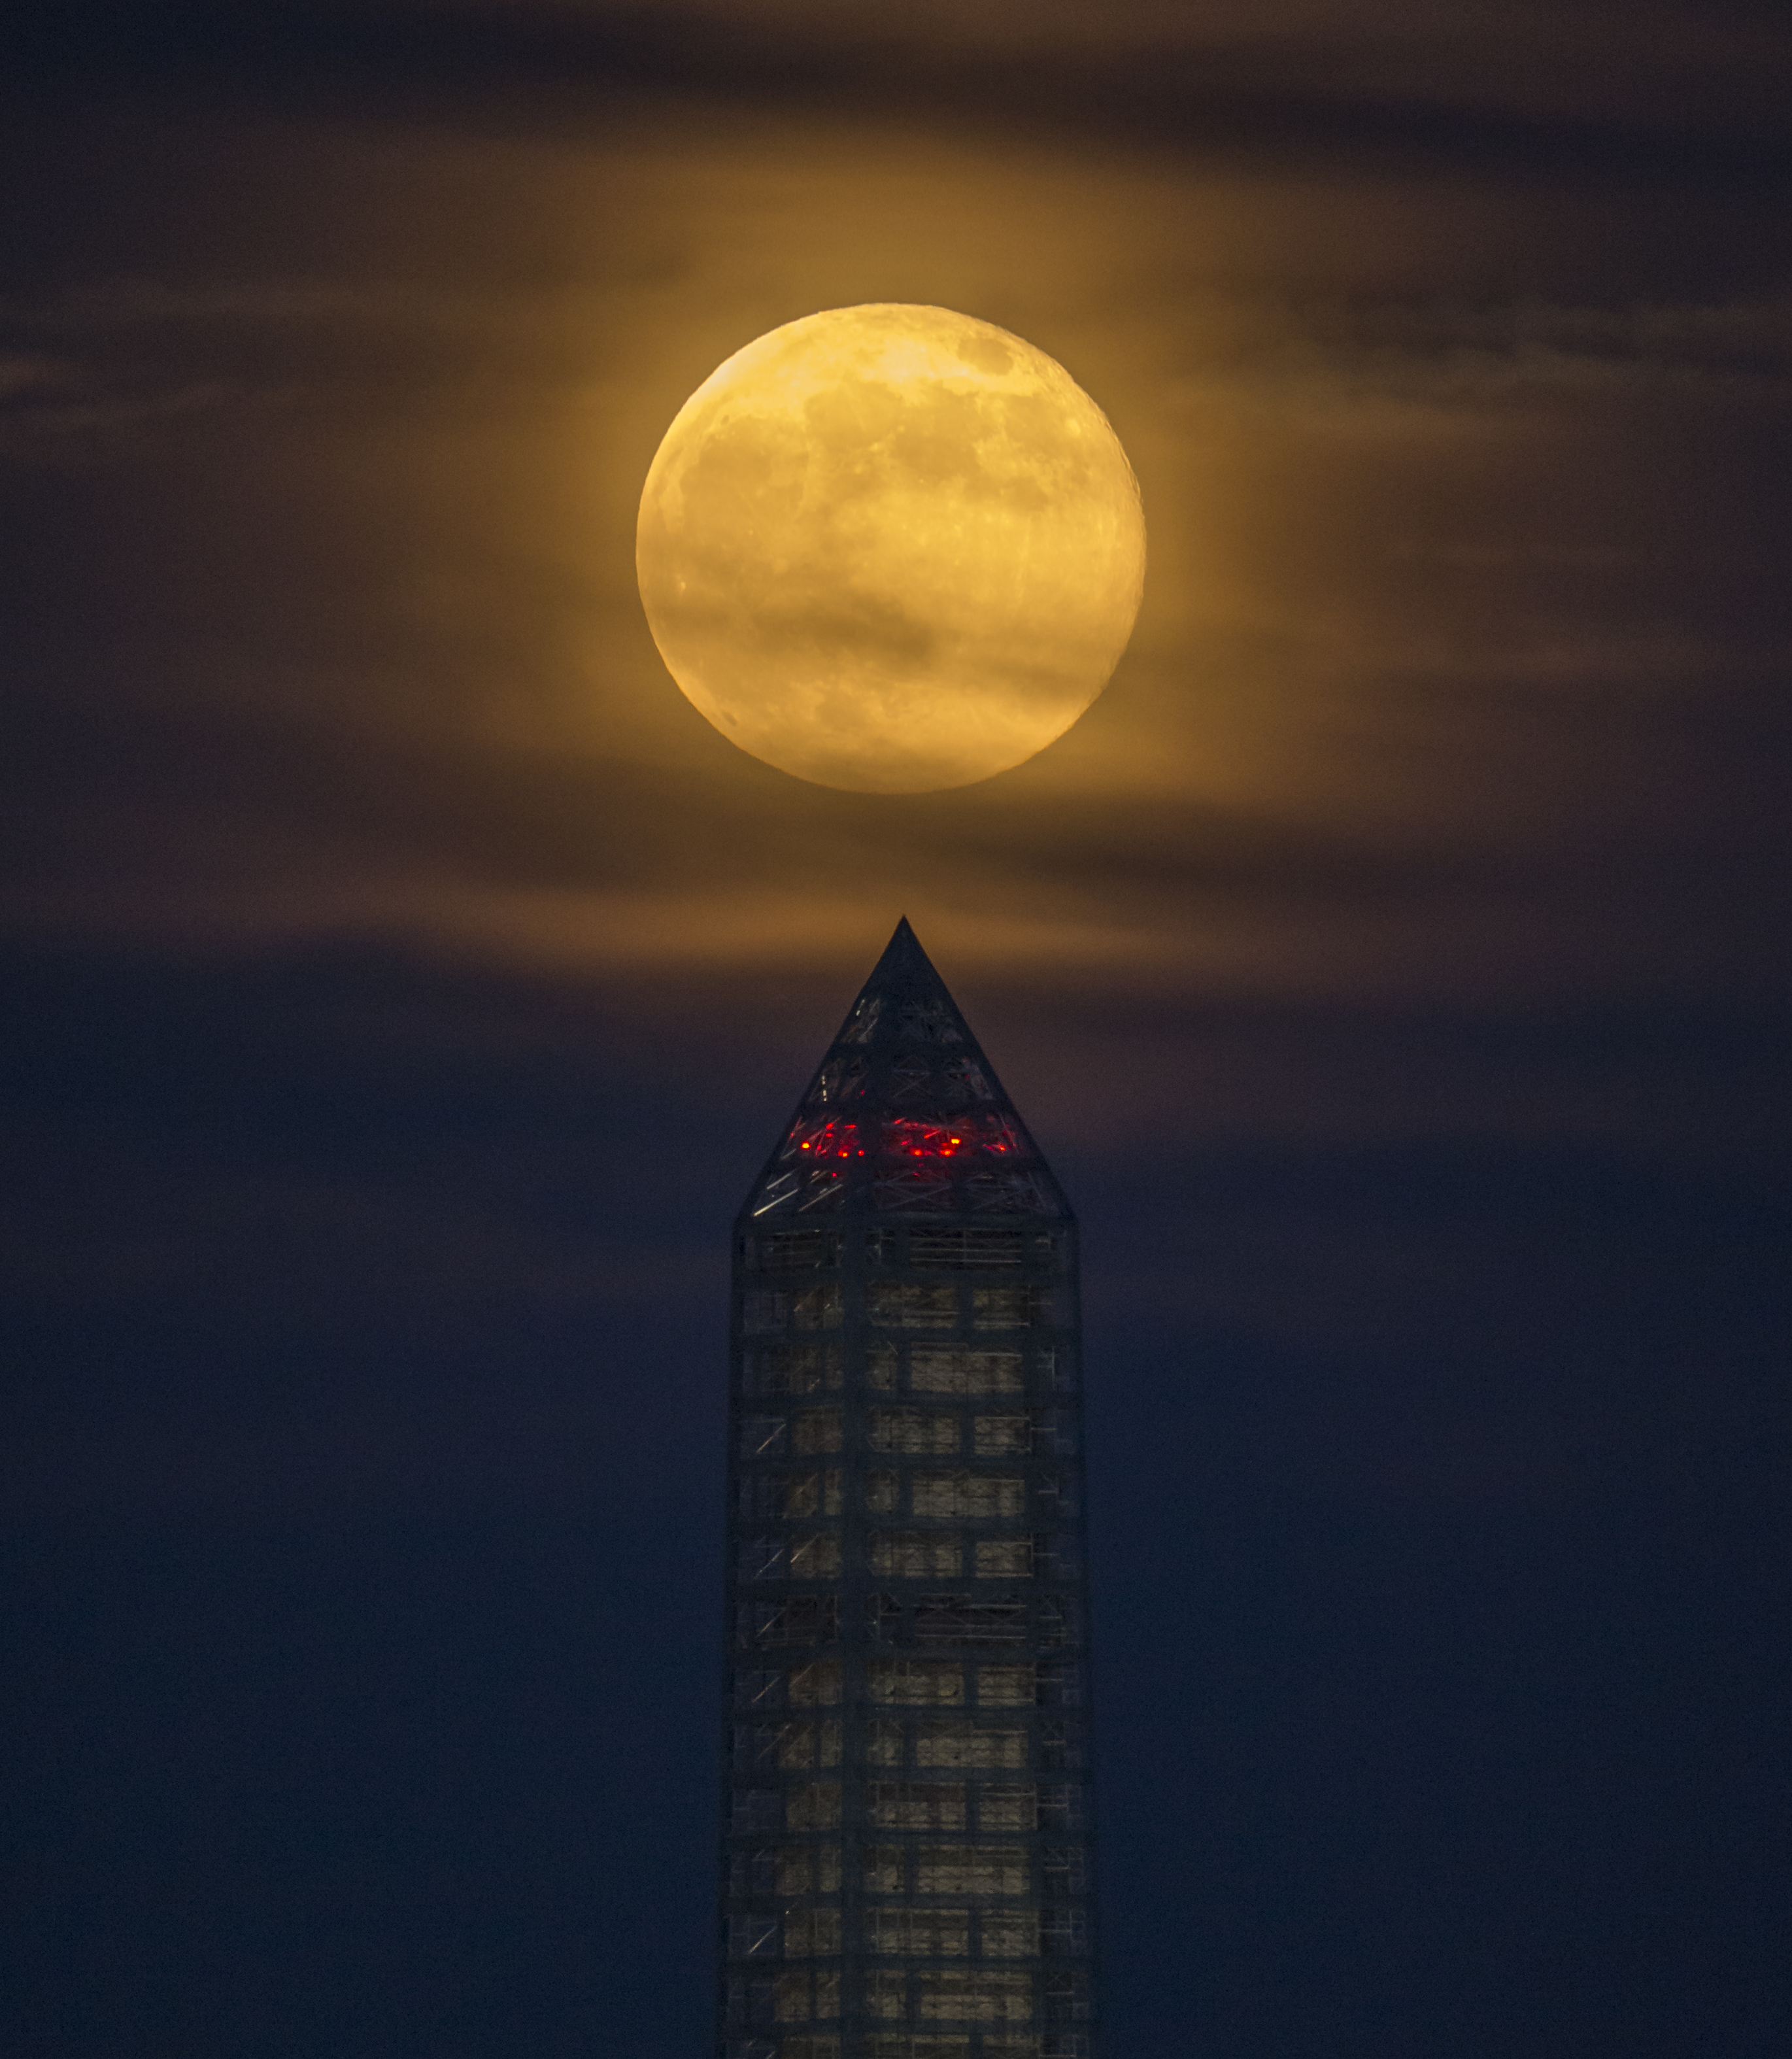 PICTURE SHOWS: A supermoon rises behind the Washington Monument, Sunday, June 23, 2013, in Washington.  ...  Prepare to have your mind blown - NASA has collected together a treasure trove of more than 140,000 images, videos and audio files.  The stunning collection consolidates imagery spread across more than 60 collections into one searchable location, called the NASA Image and Video Library website.  Cover Images have chosen a gallery of the most popular images currently on the website, which include the first American astronaut to walk in space and a self-portrait of NASA's Curiosity Mars rover.  The portal allows users to search and discover content from across the agency's many missions in aeronautics, astrophysics, Earth science, human spaceflight, and more.  The library is not comprehensive, but rather provides the best of what NASA makes available from a single point of presence on the web. Additionally, it is a living website, where new and archival images, video and audio files continually will be added.  Where: Washington, District Of Columbia, United States When: 23 Jun 2013 Credit: (NASA/Bill Ingalls)  **MANDATORY CREDIT: (NASA/Bill Ingalls)**